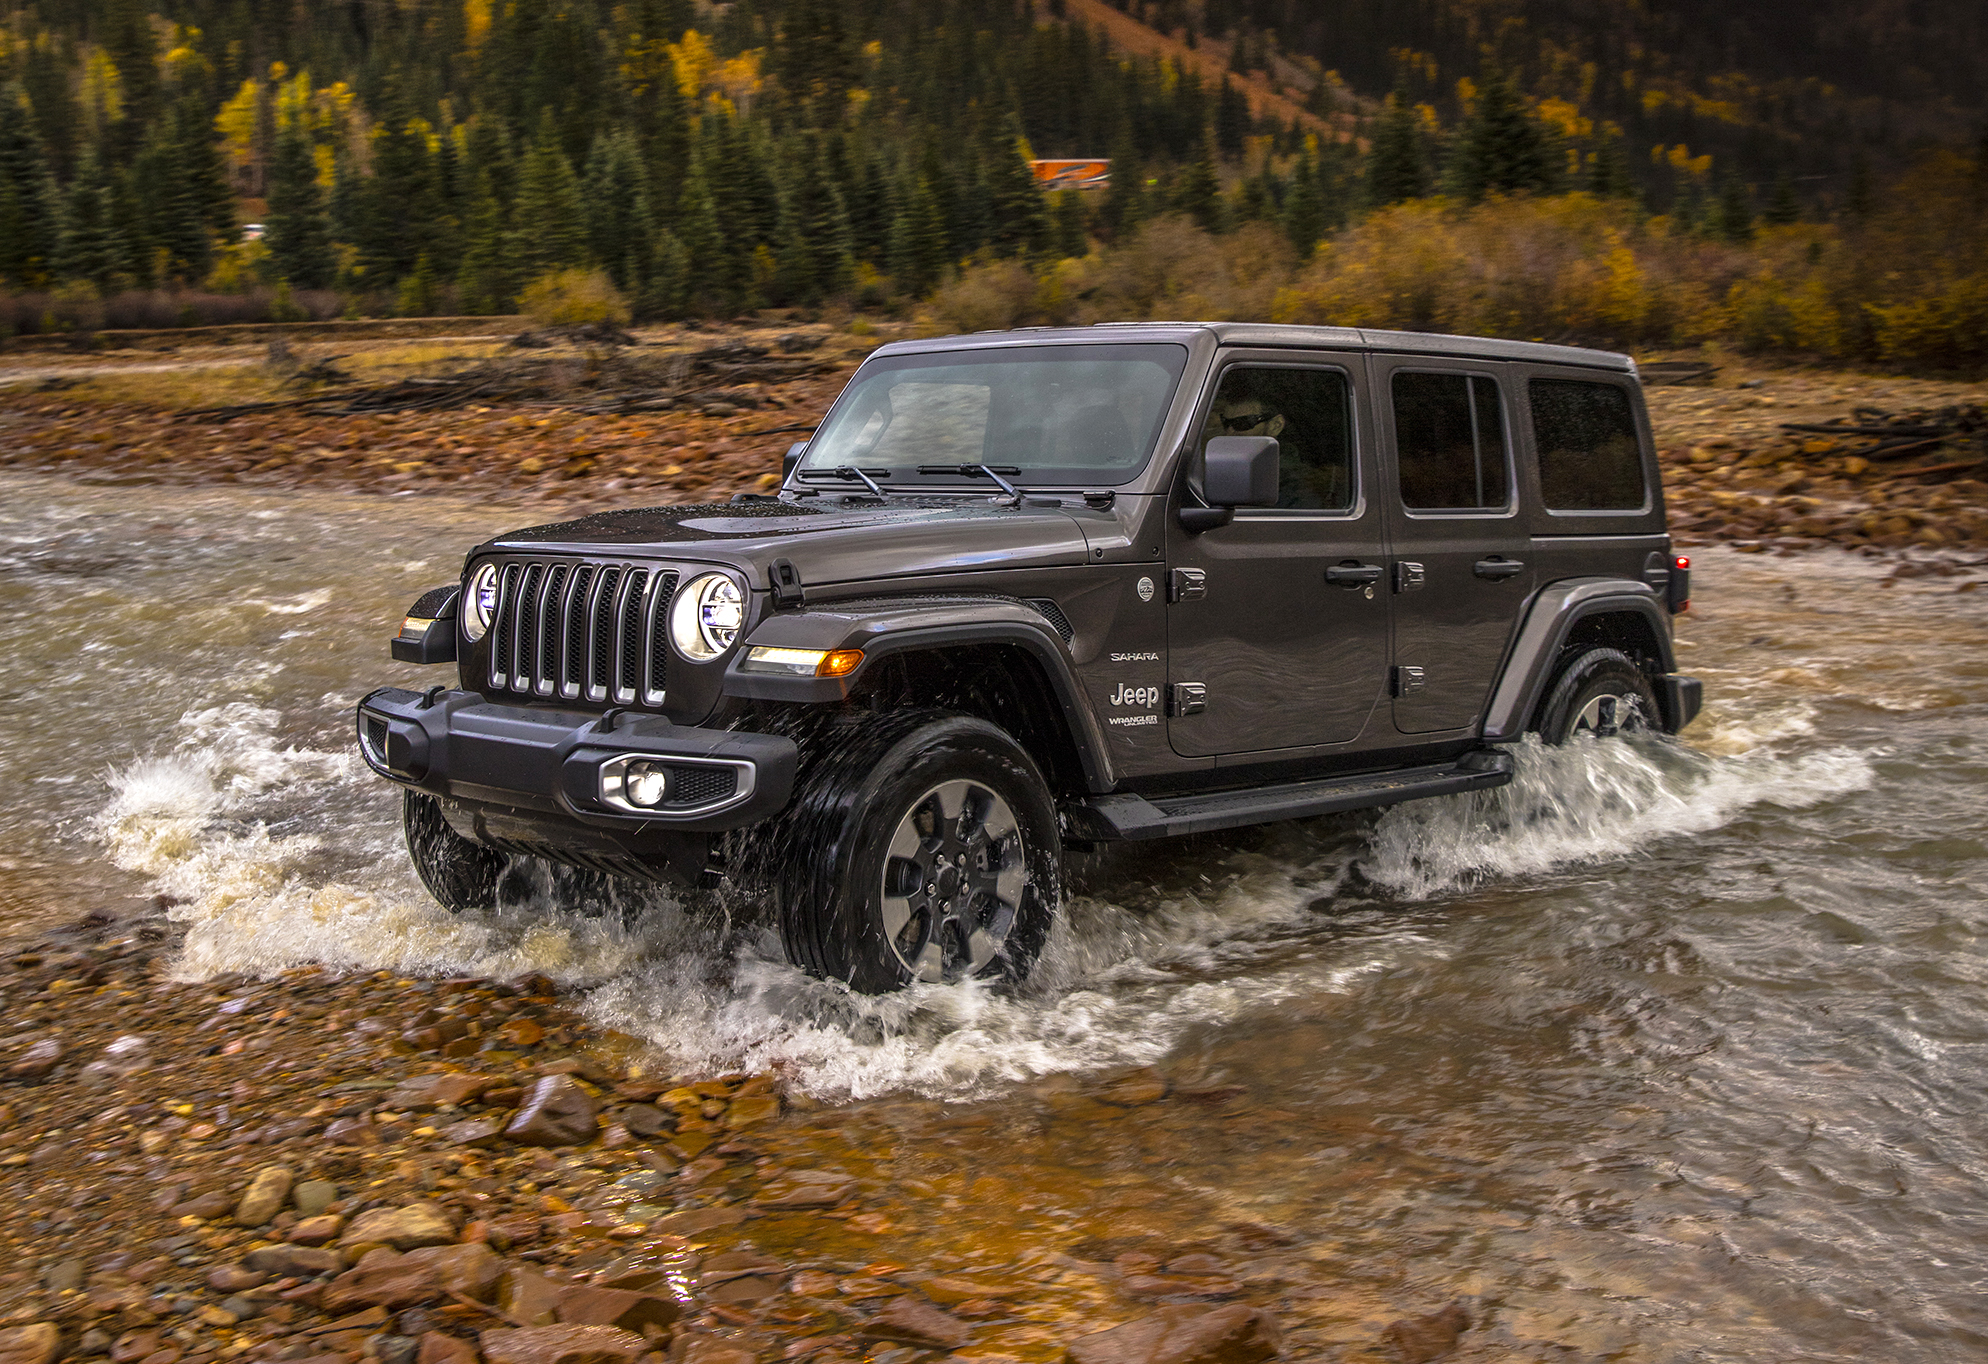 Wrangler reboot: Fans will find new powertrains, tops and manners for Jeep's off-road icon